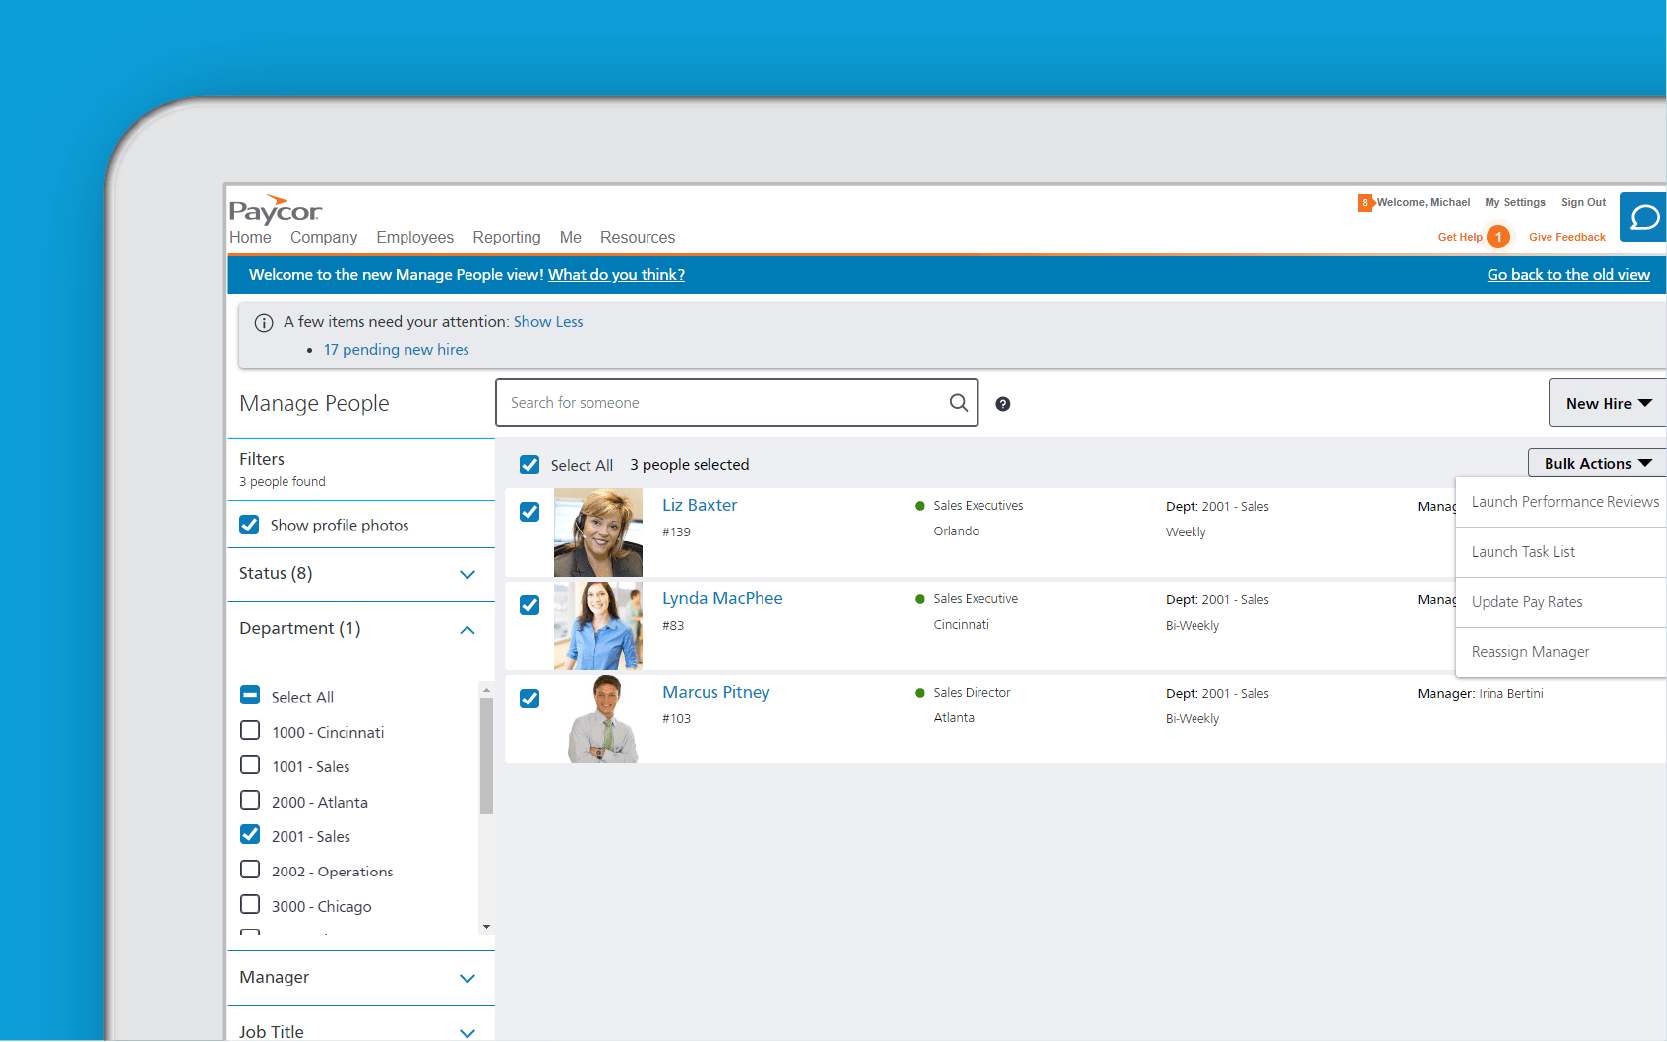 Corner of tablet showing Paycor compensation dashboard against blue background